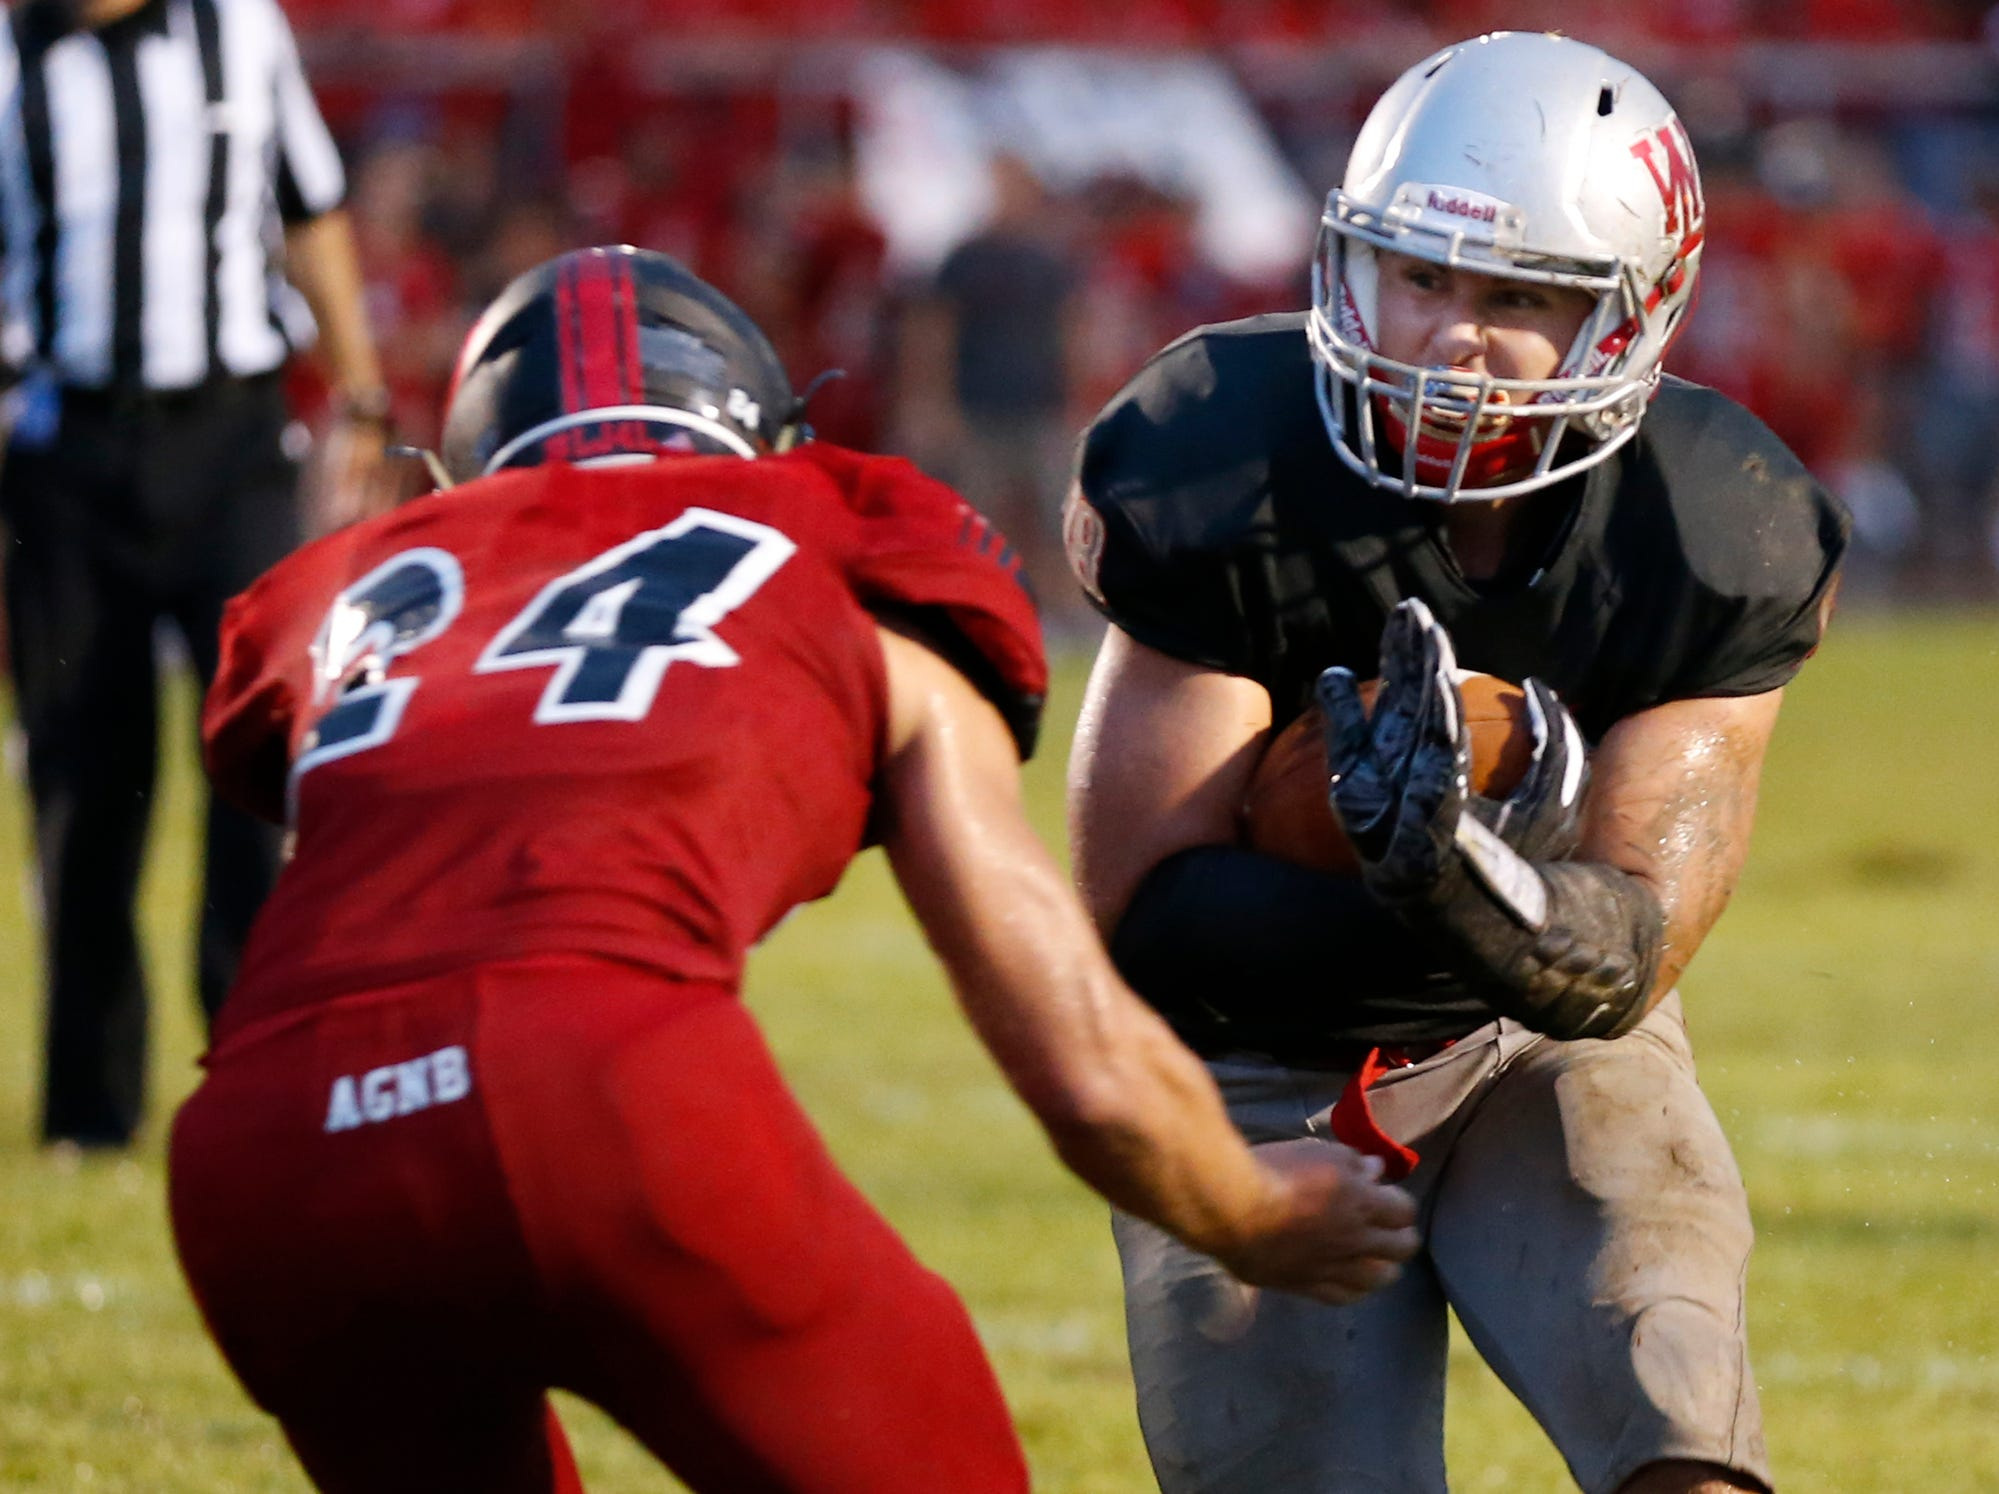 Greater Lafayette high school football schedule for Aug. 24